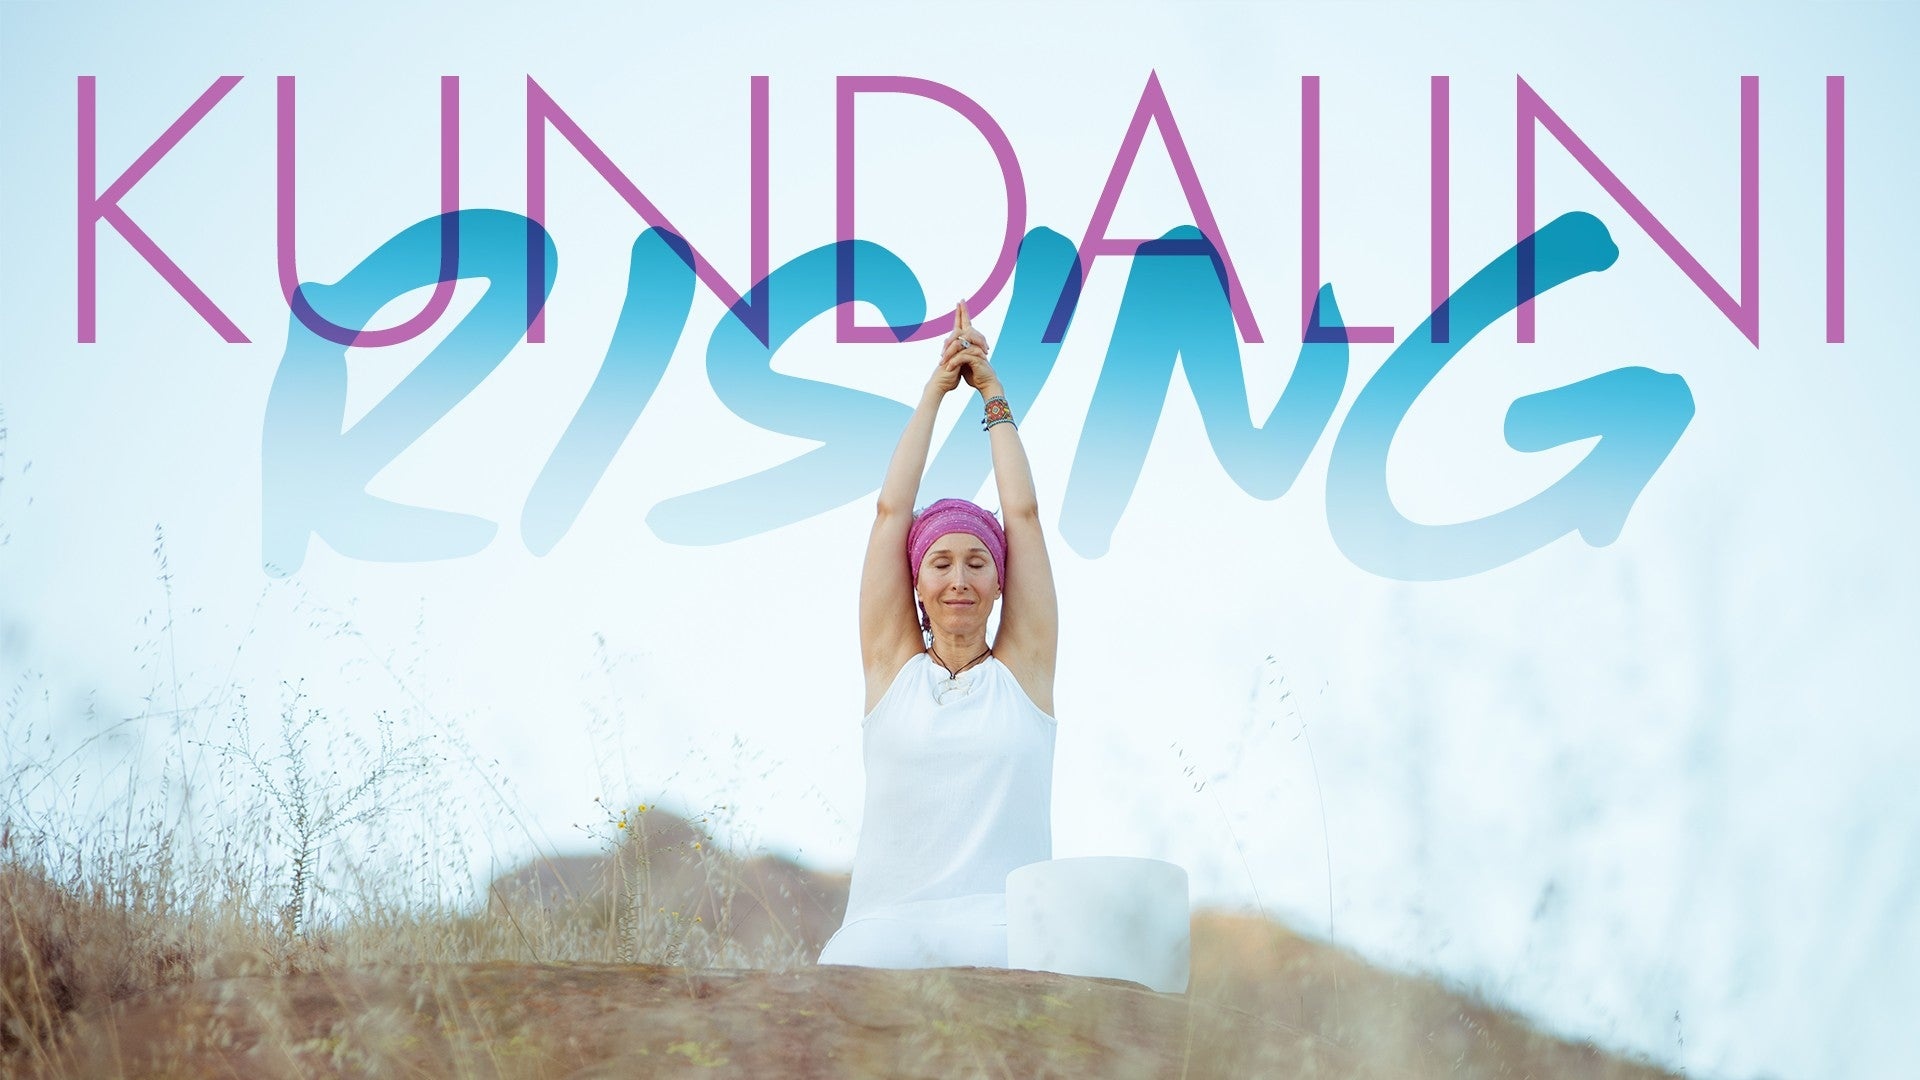 Kundalini Rising Artwork